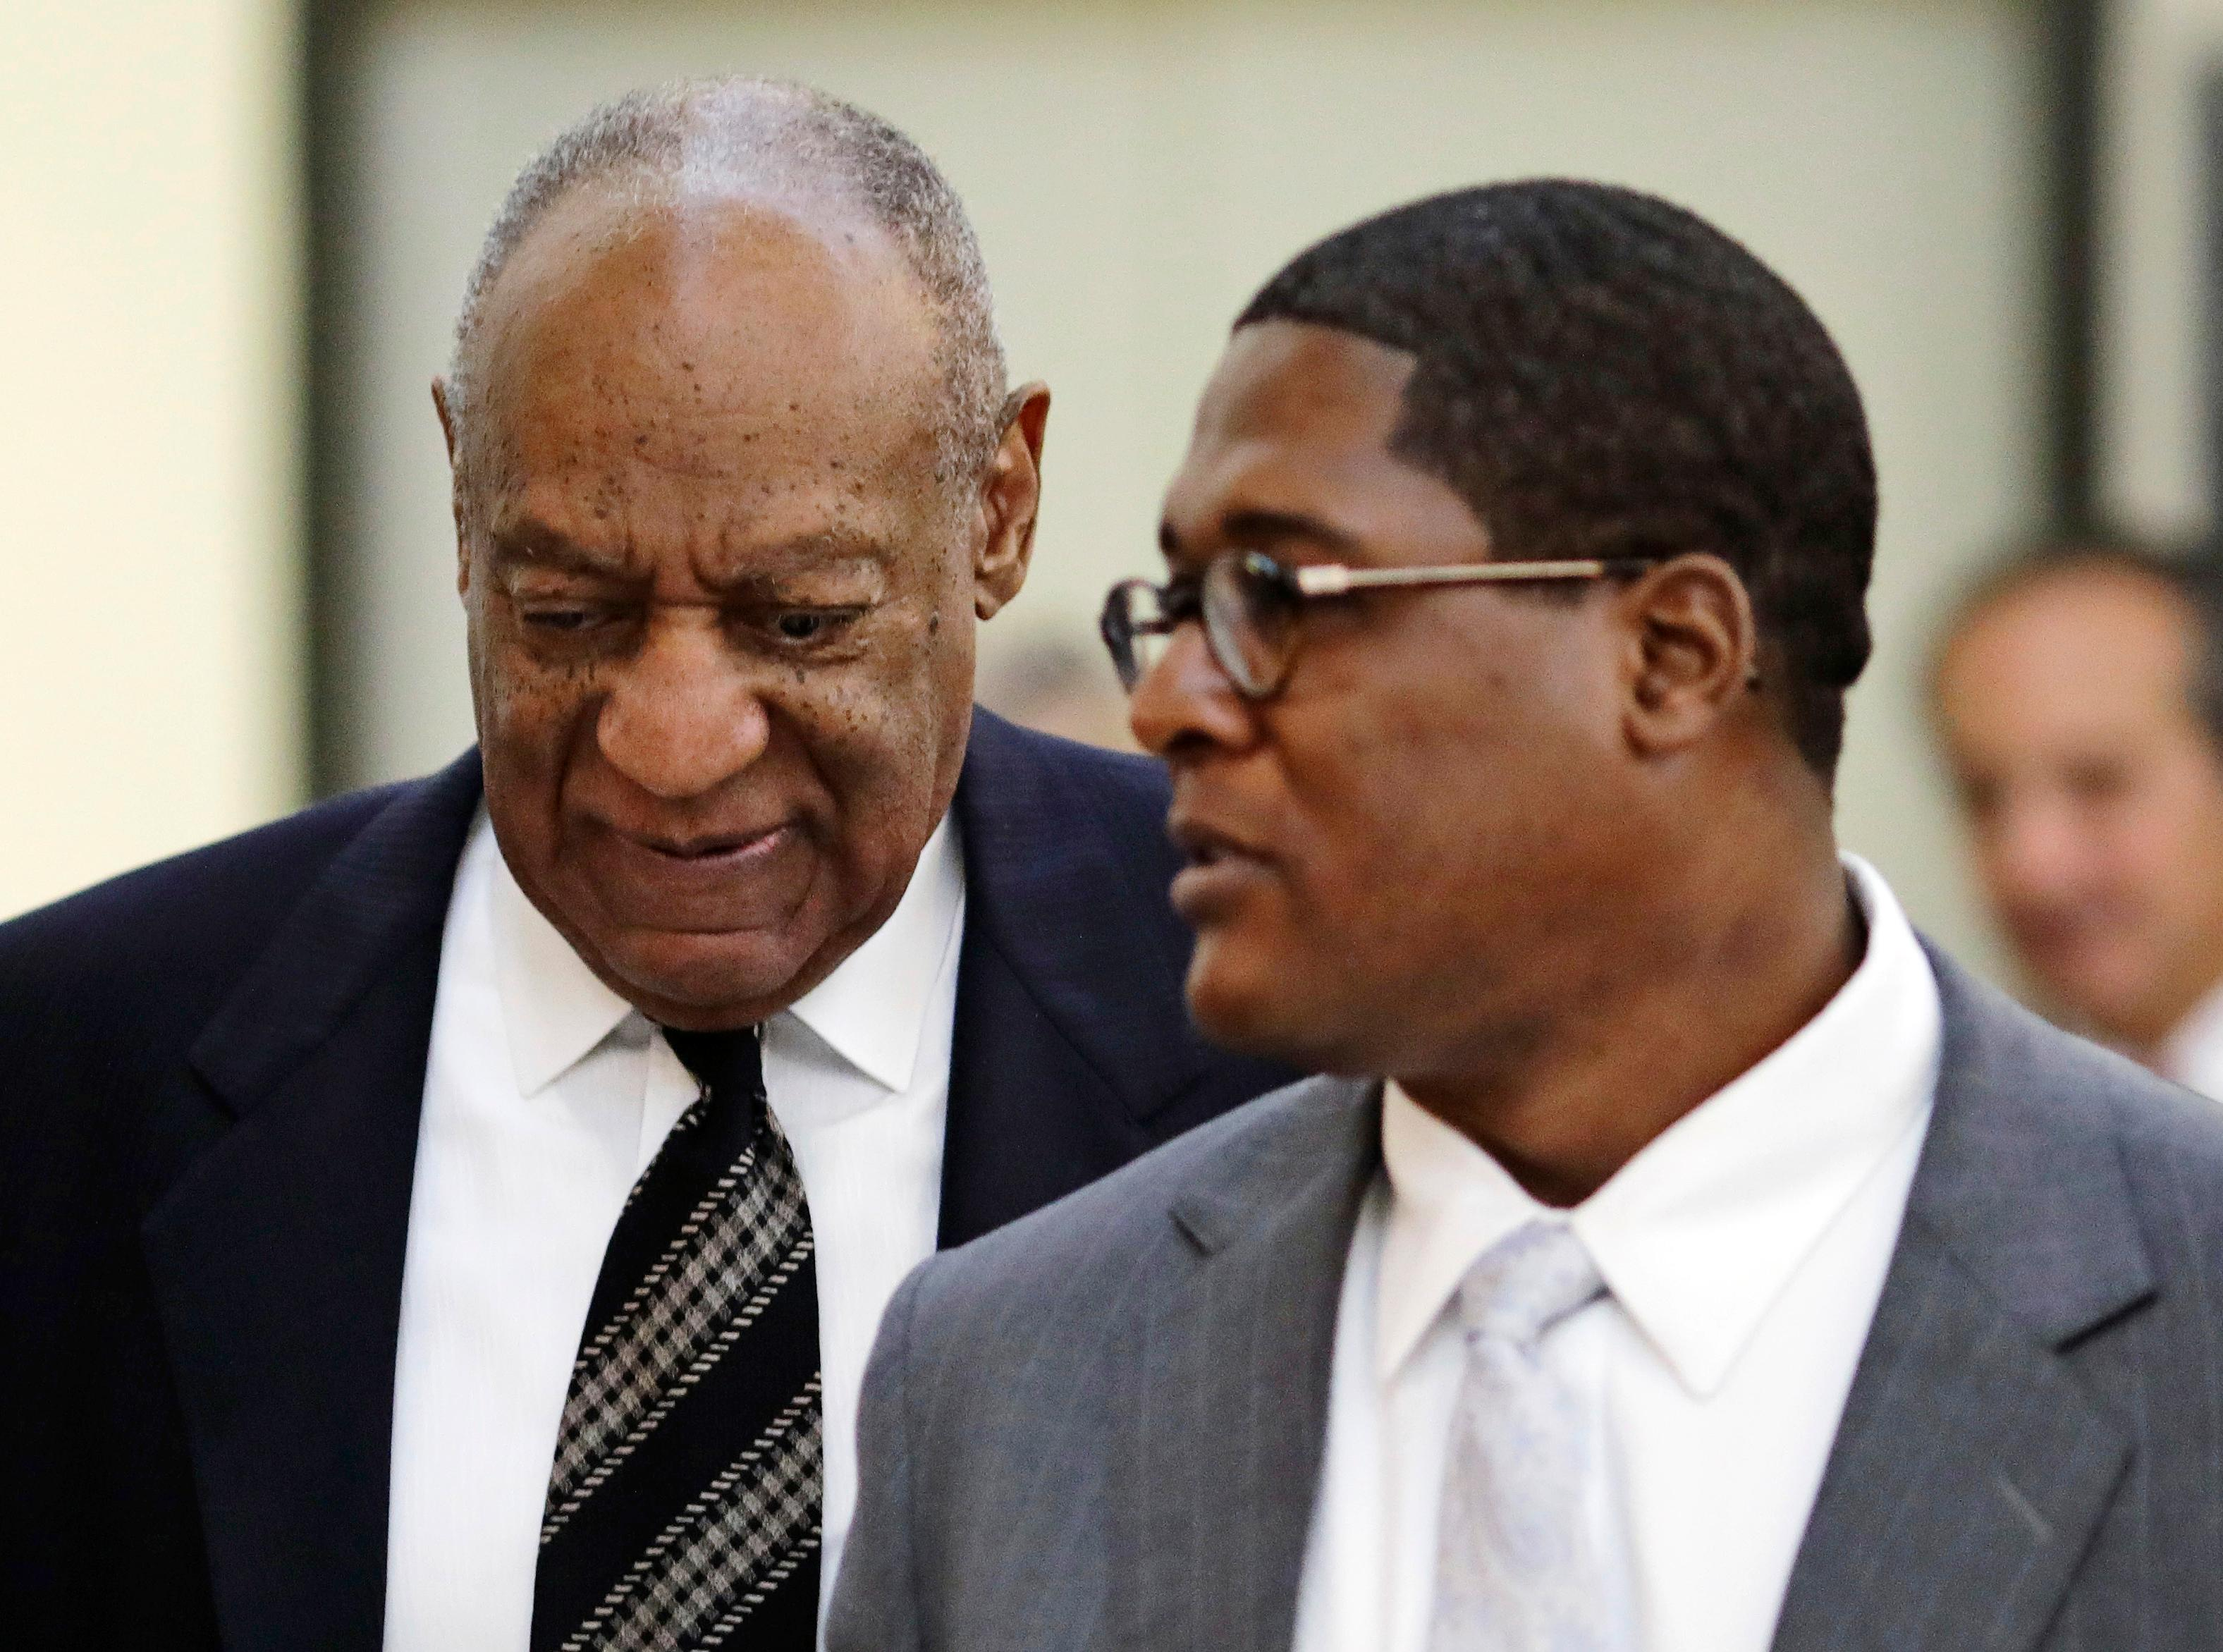 Actor and comedian Bill Cosby, left, and his spokesman Andrew Wyatt, return to the courtroom after a recess in Cosby's sexual assault retrial at the Montgomery County Courthouse,  Monday, April 16, 2018, in Norristown, Pa.  (Dominick Reuter/Pool Photo via AP)